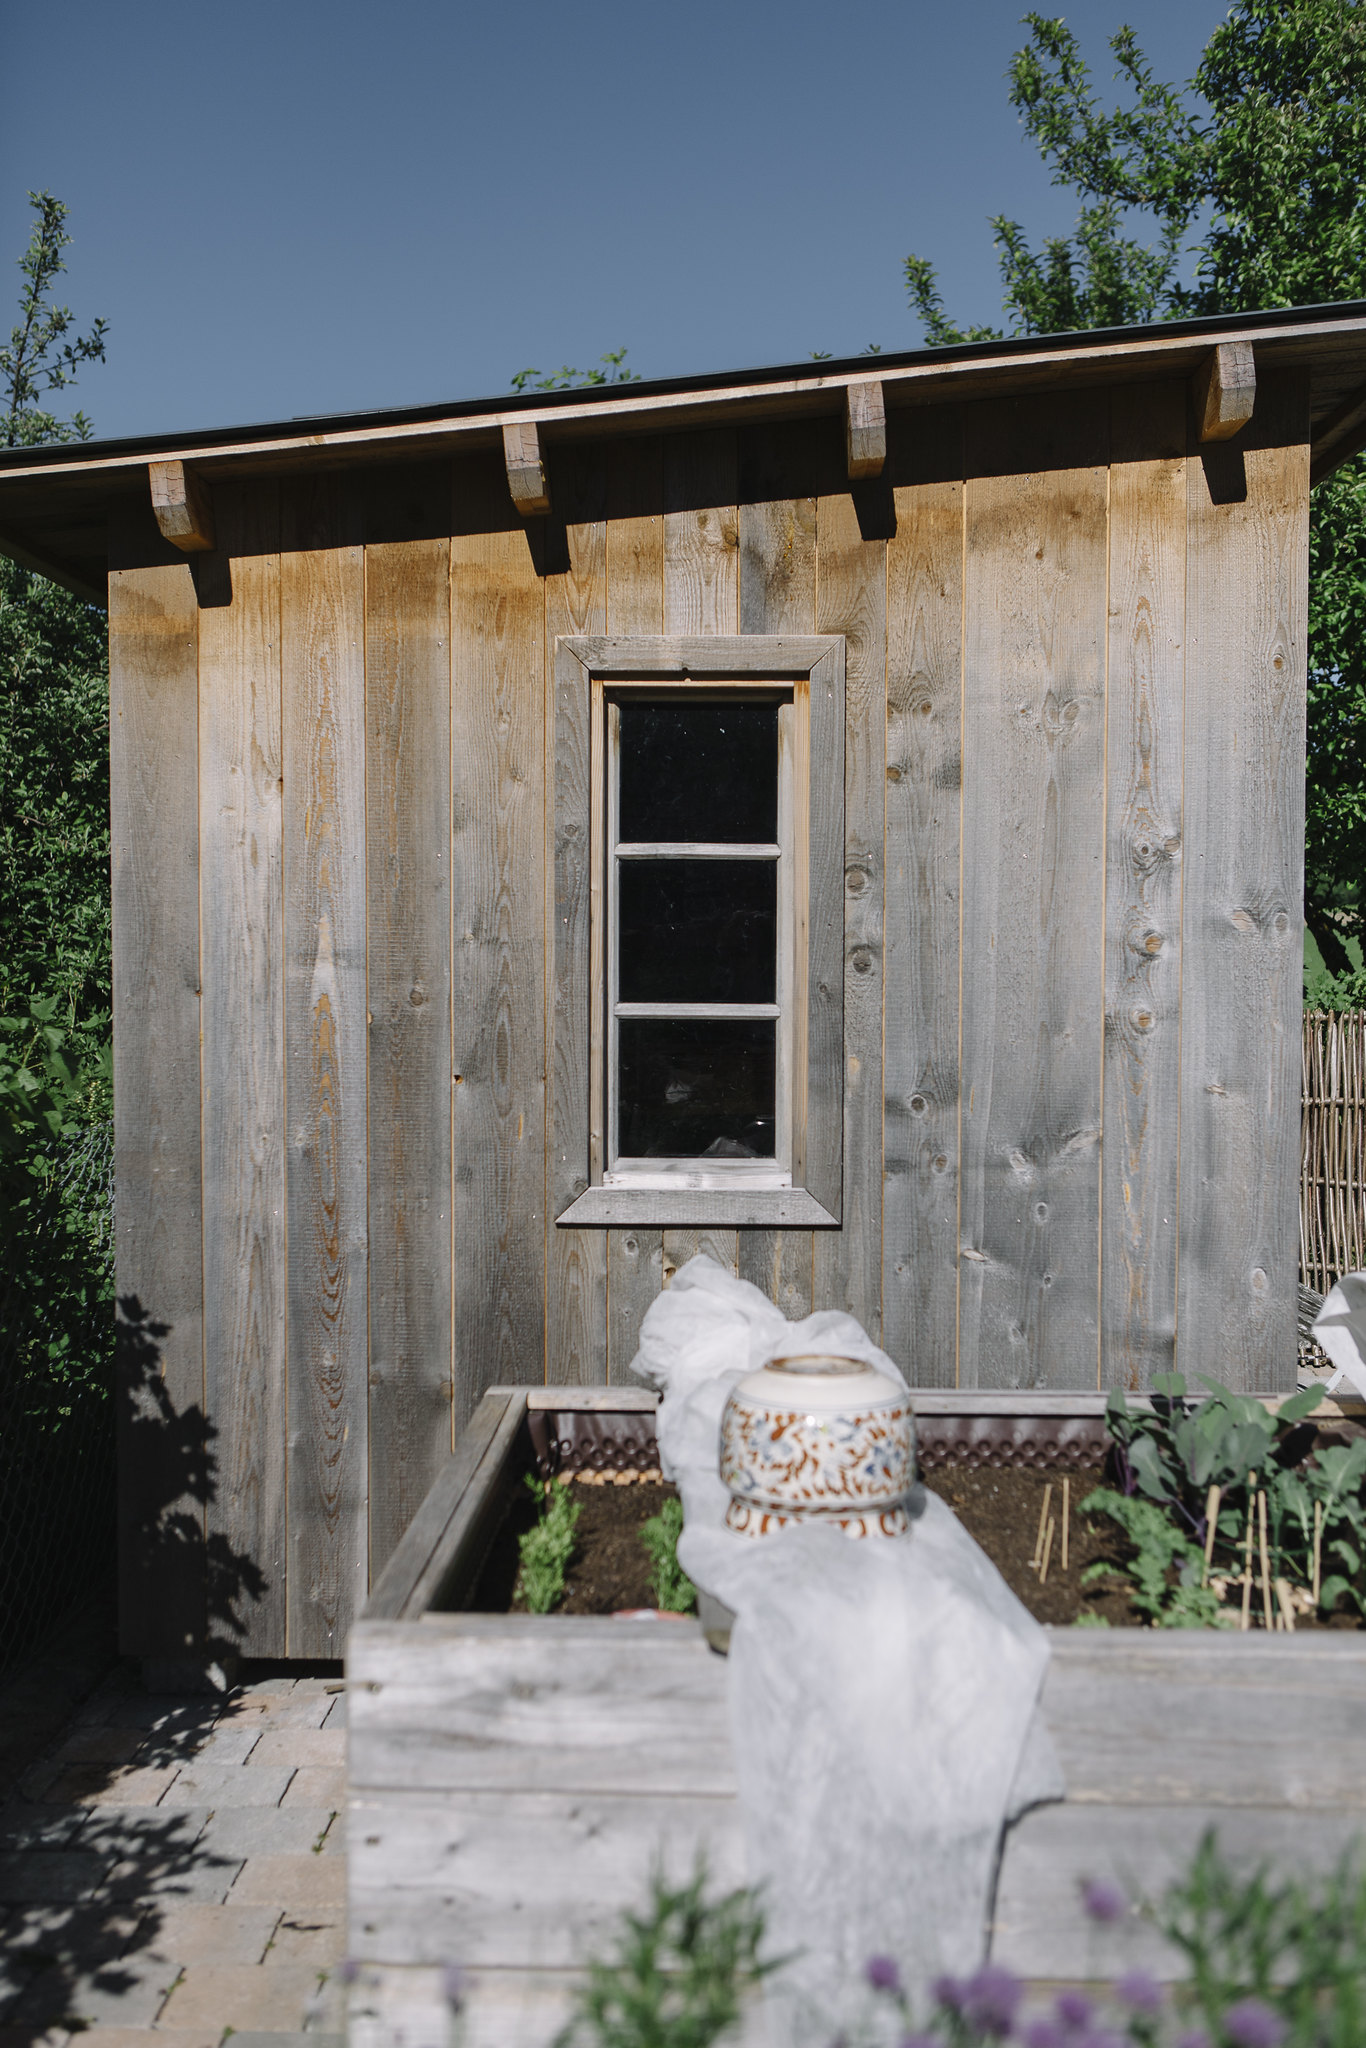 Mum's garden shed, Visual Diary on The Curly Head, a Blog from Munich, Photography by Amelie Niederbuchner